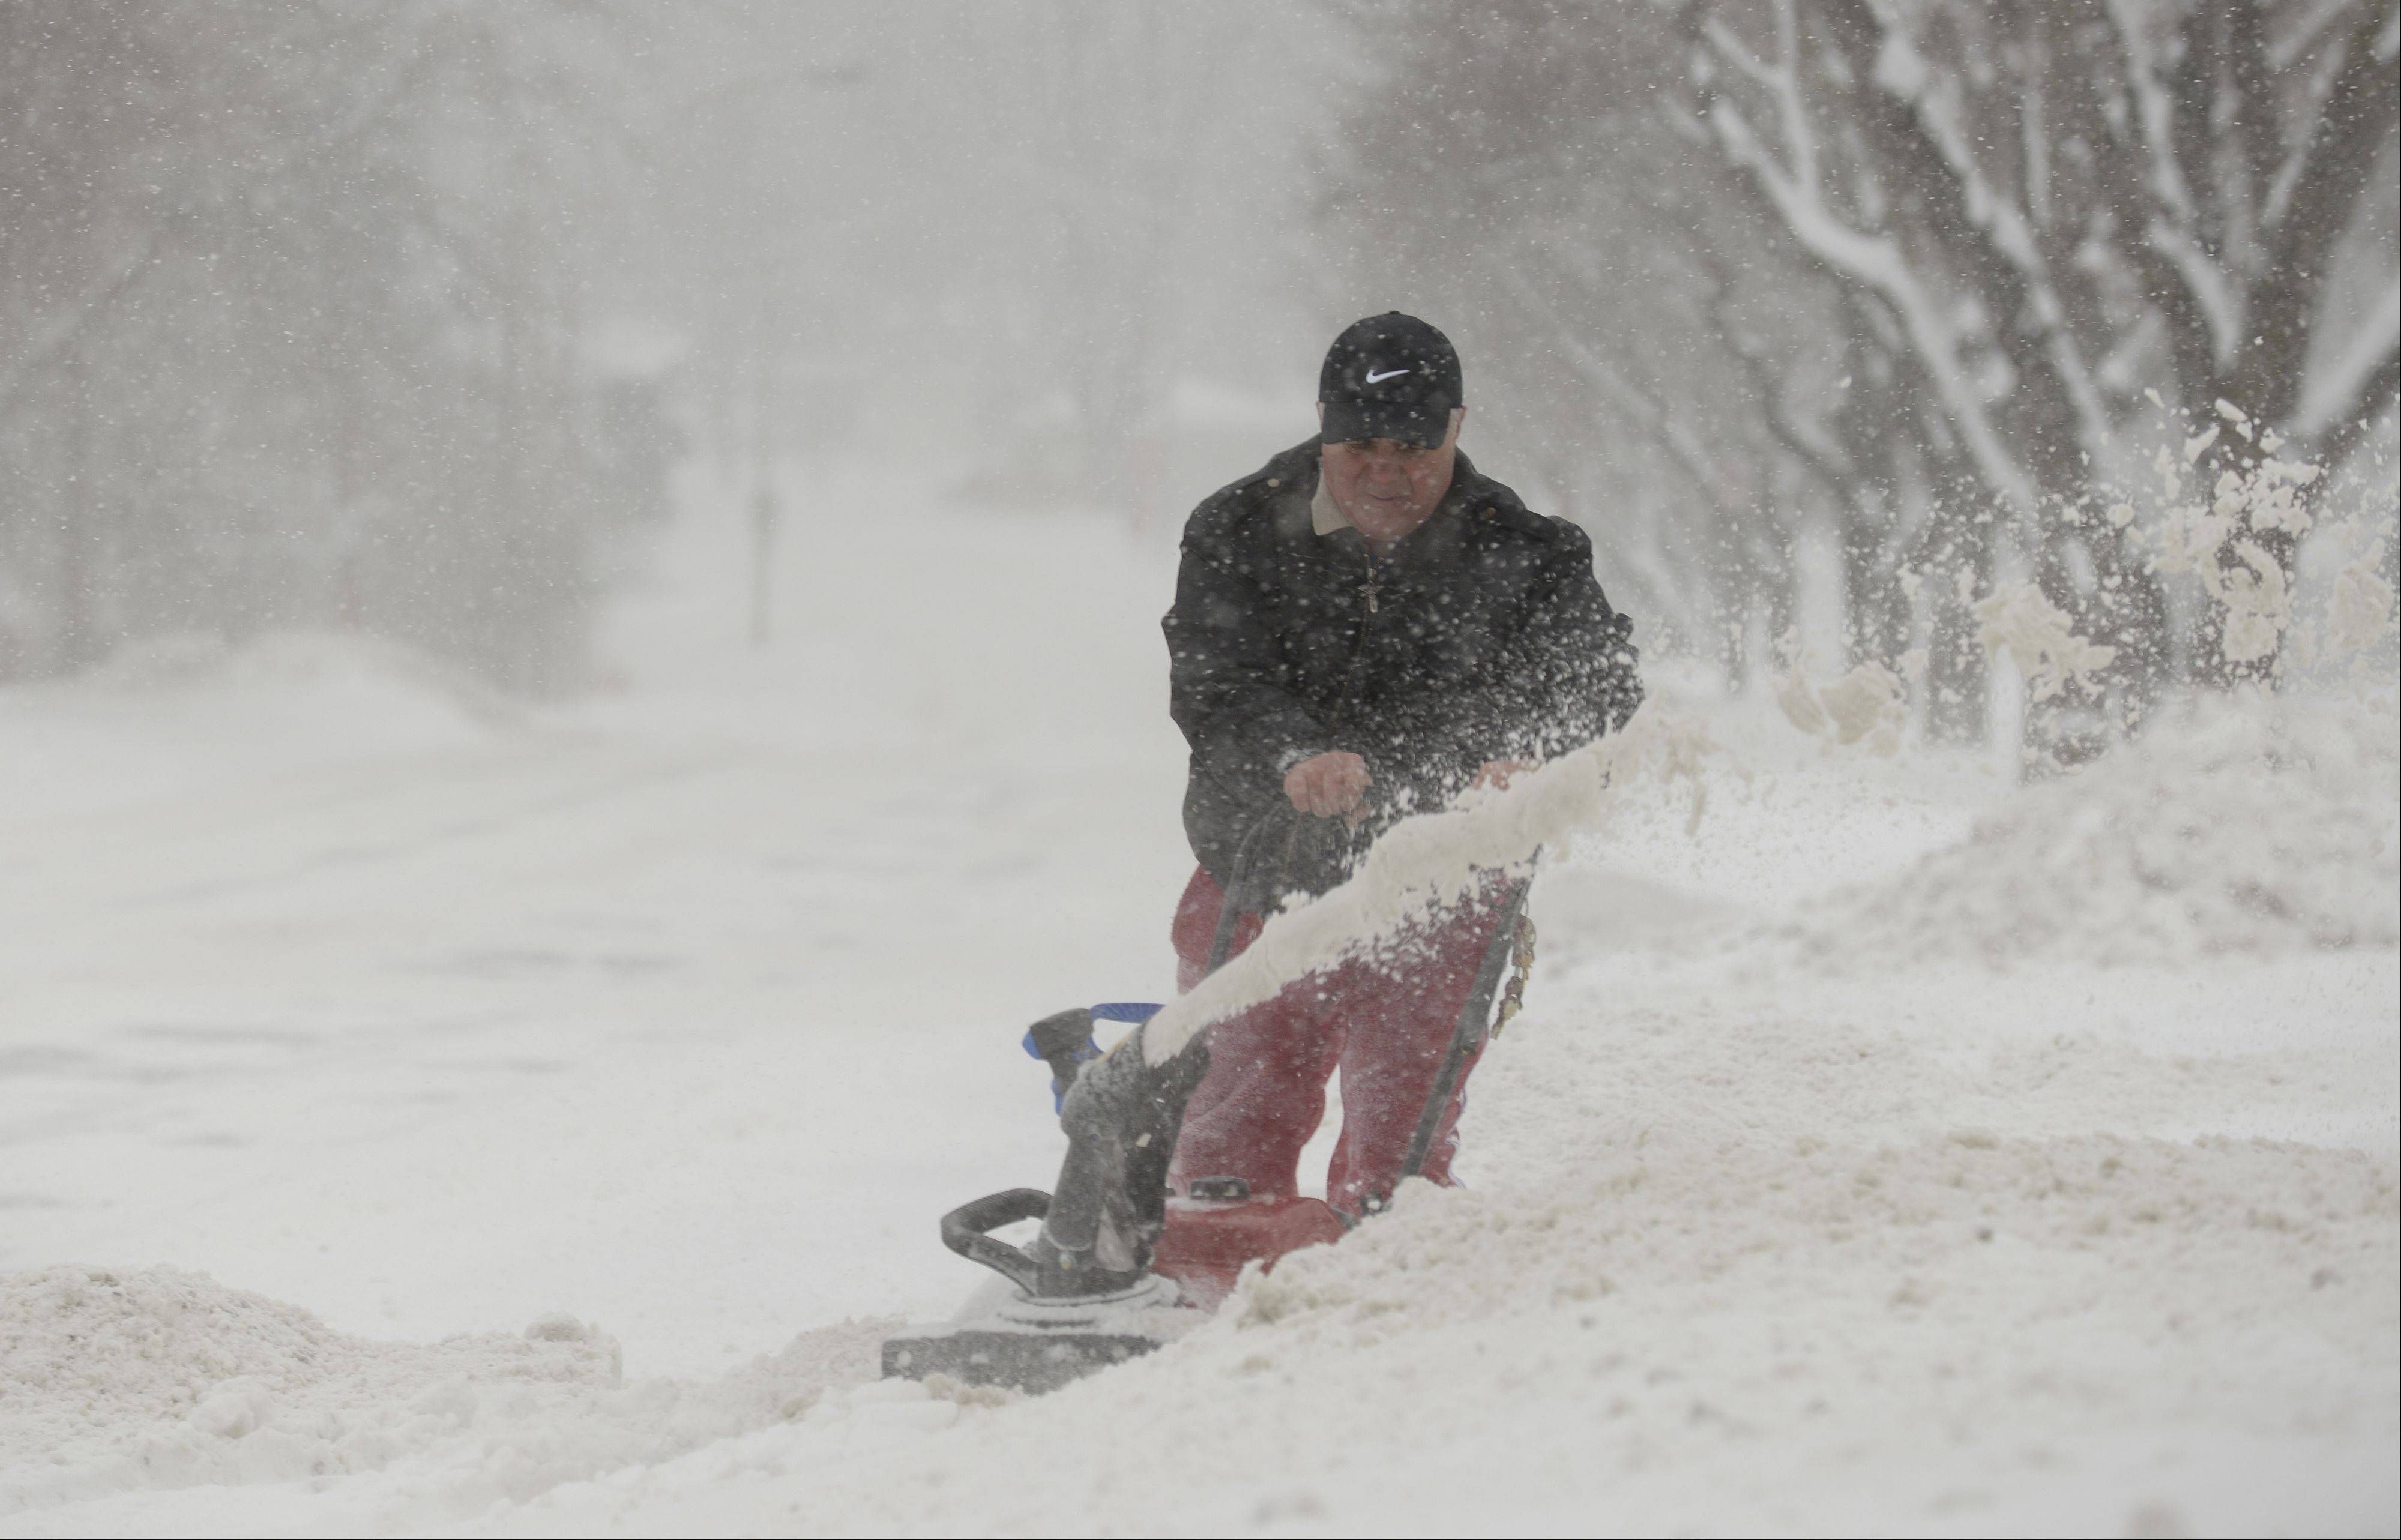 Koci Kocibelli of Lombard uses a snowblower to clear the snow off his driveway Sunday. The snow was expected to move out of the region by the end of the day, but brutally cold temperatures are expected to settle in behind it.